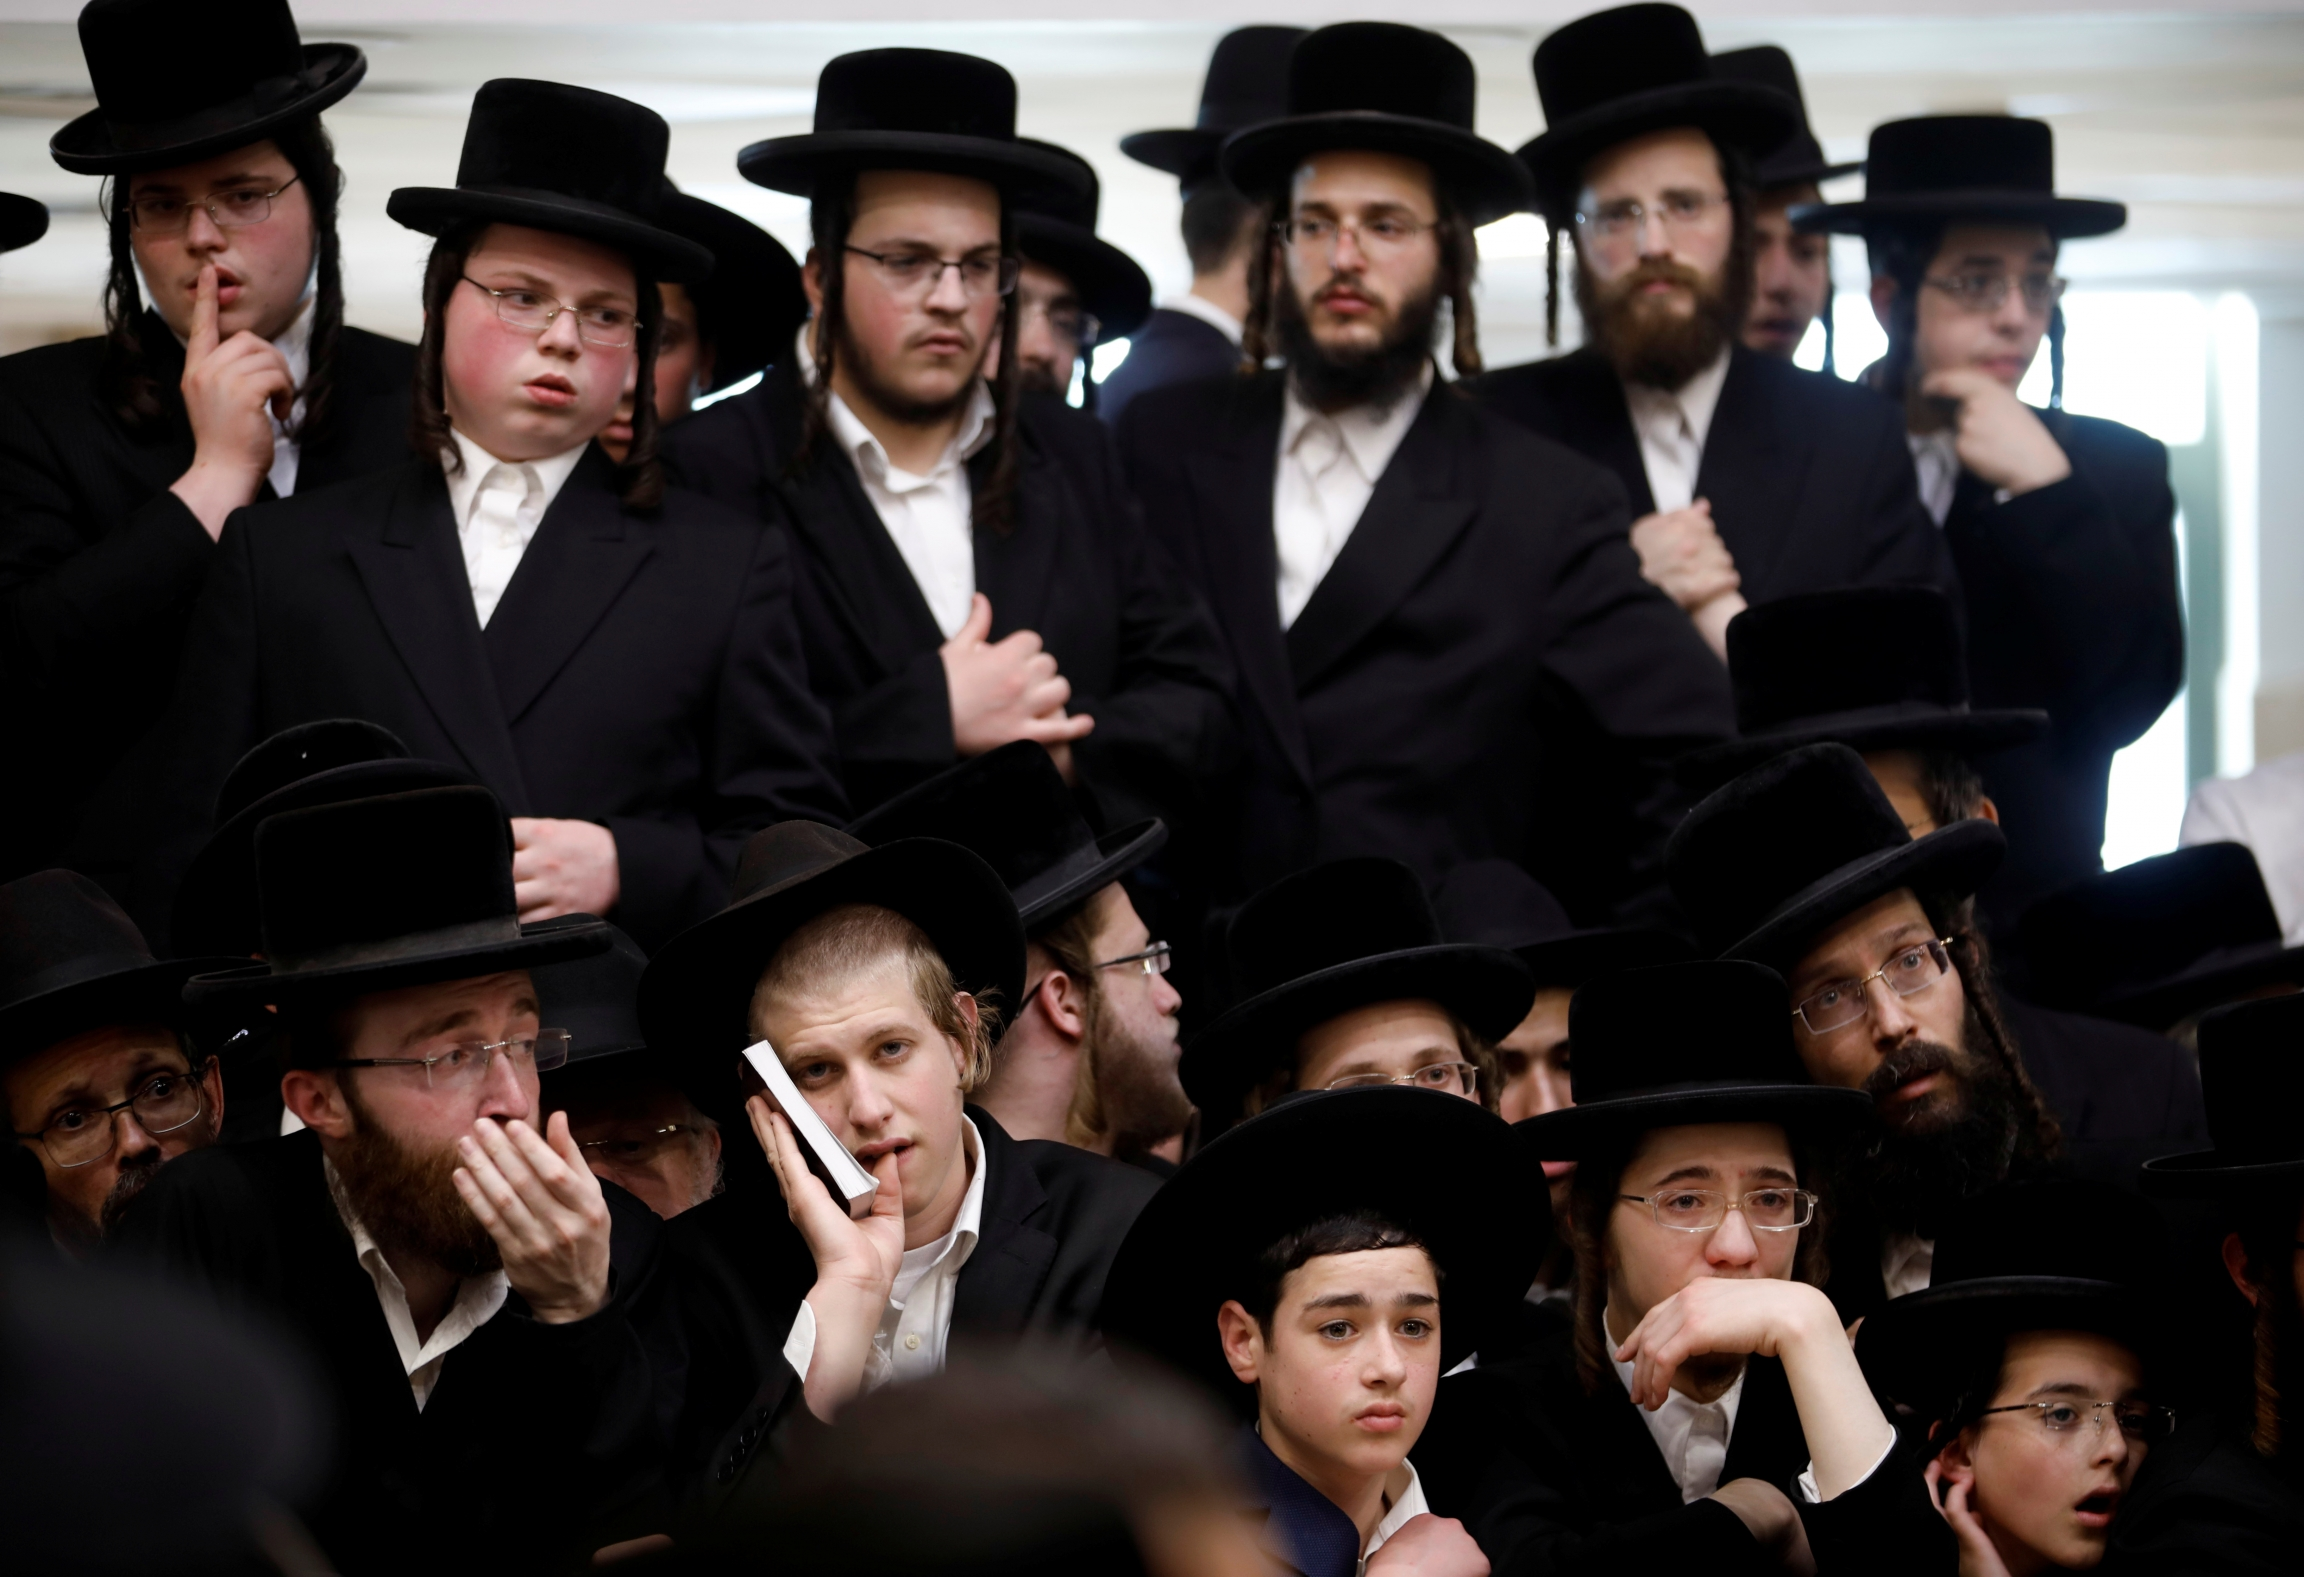 A large group of men in Orthodox Jewish clothing.